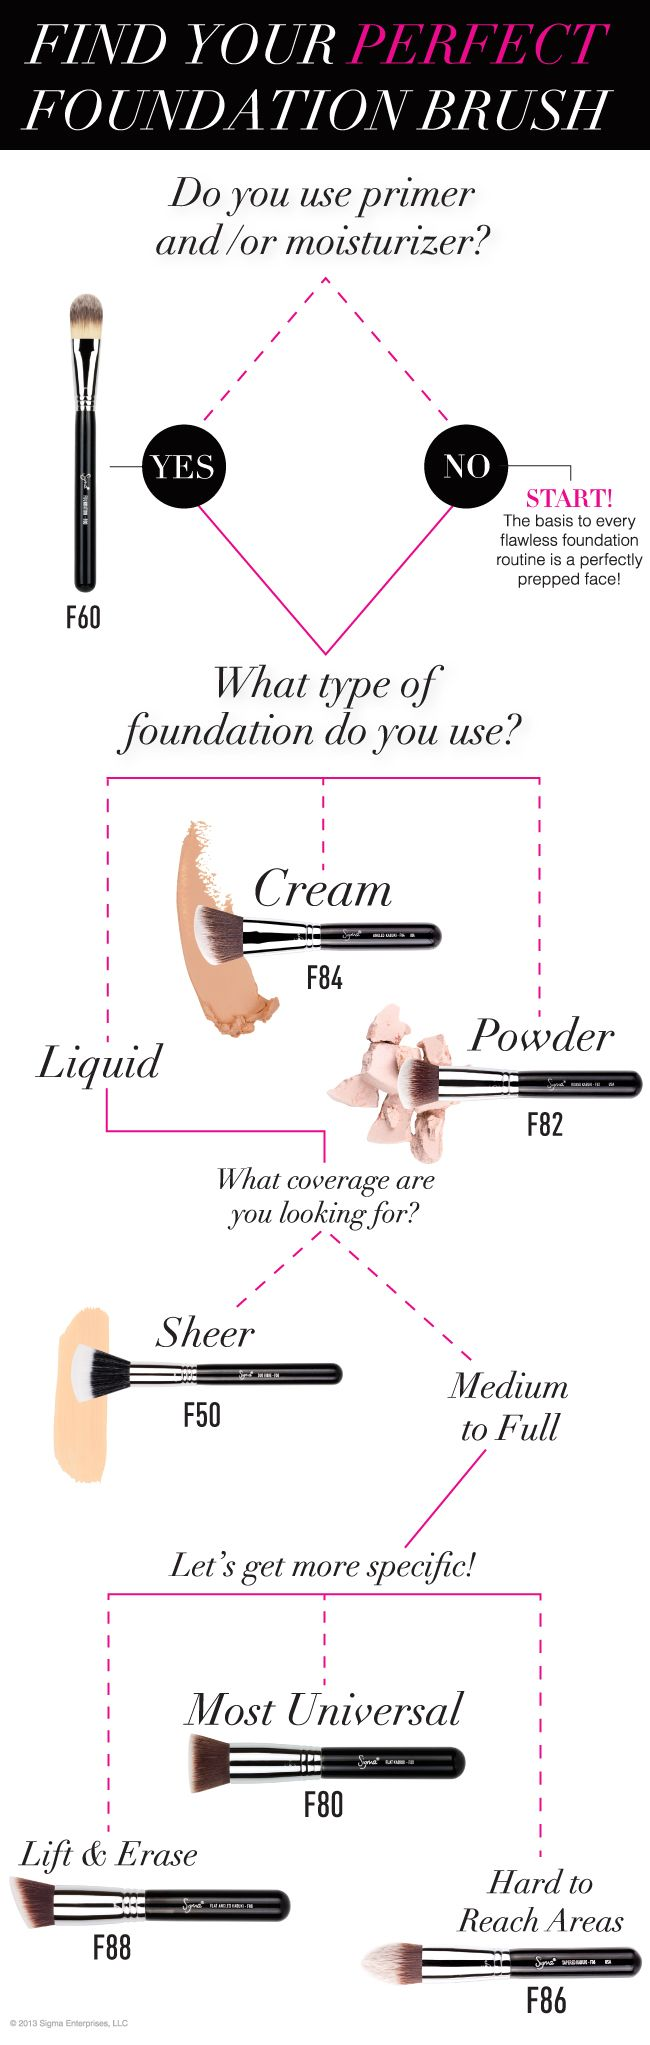 Use this Sigma quick guide to find the perfect brush for a flawless foundation finish! #sigmabeauty #infographic http://www.sigmabeauty.com/category_s/58.htm?click=246498